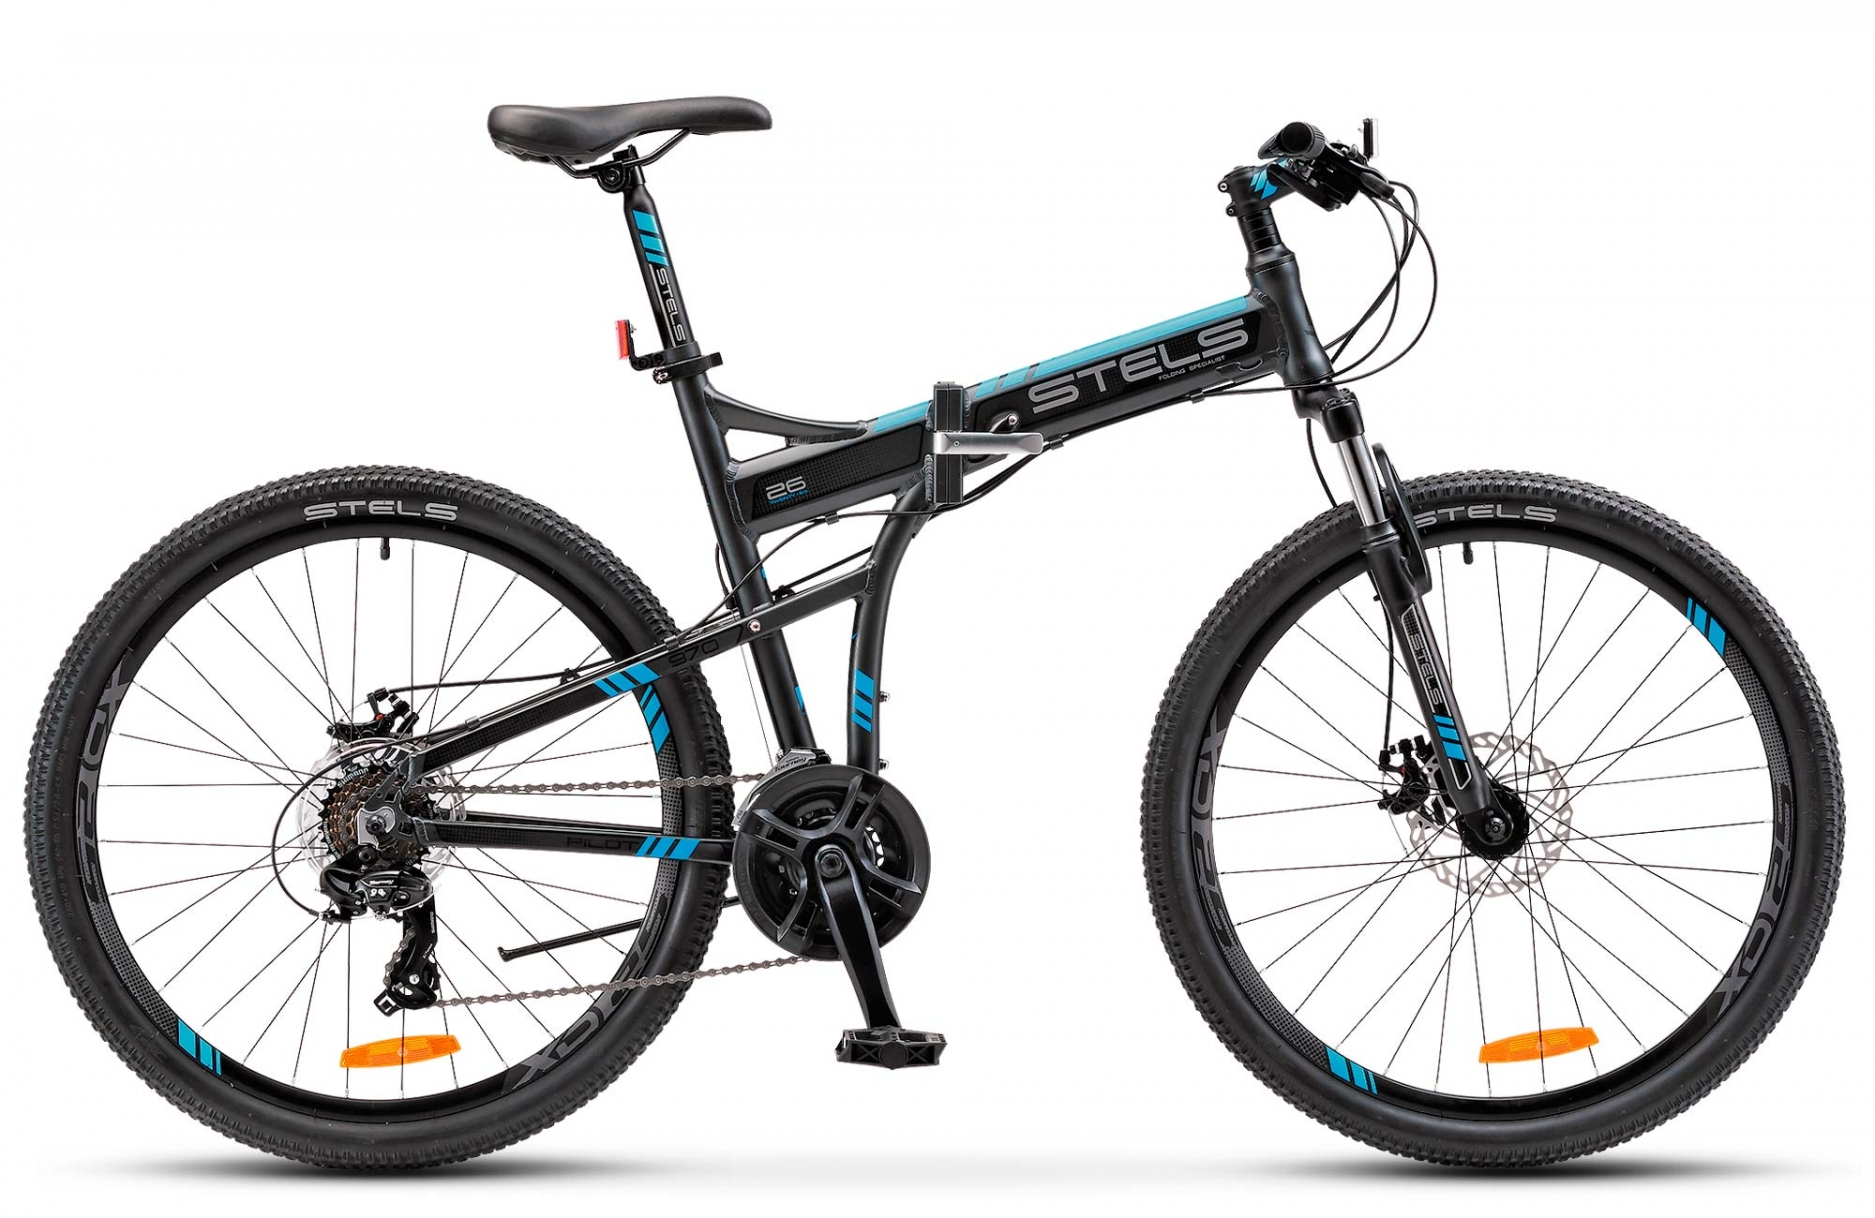 stels pilot 970 md 26 модель 2017 года в разобранном виде изображение с сайта www.TopBicycle.ru